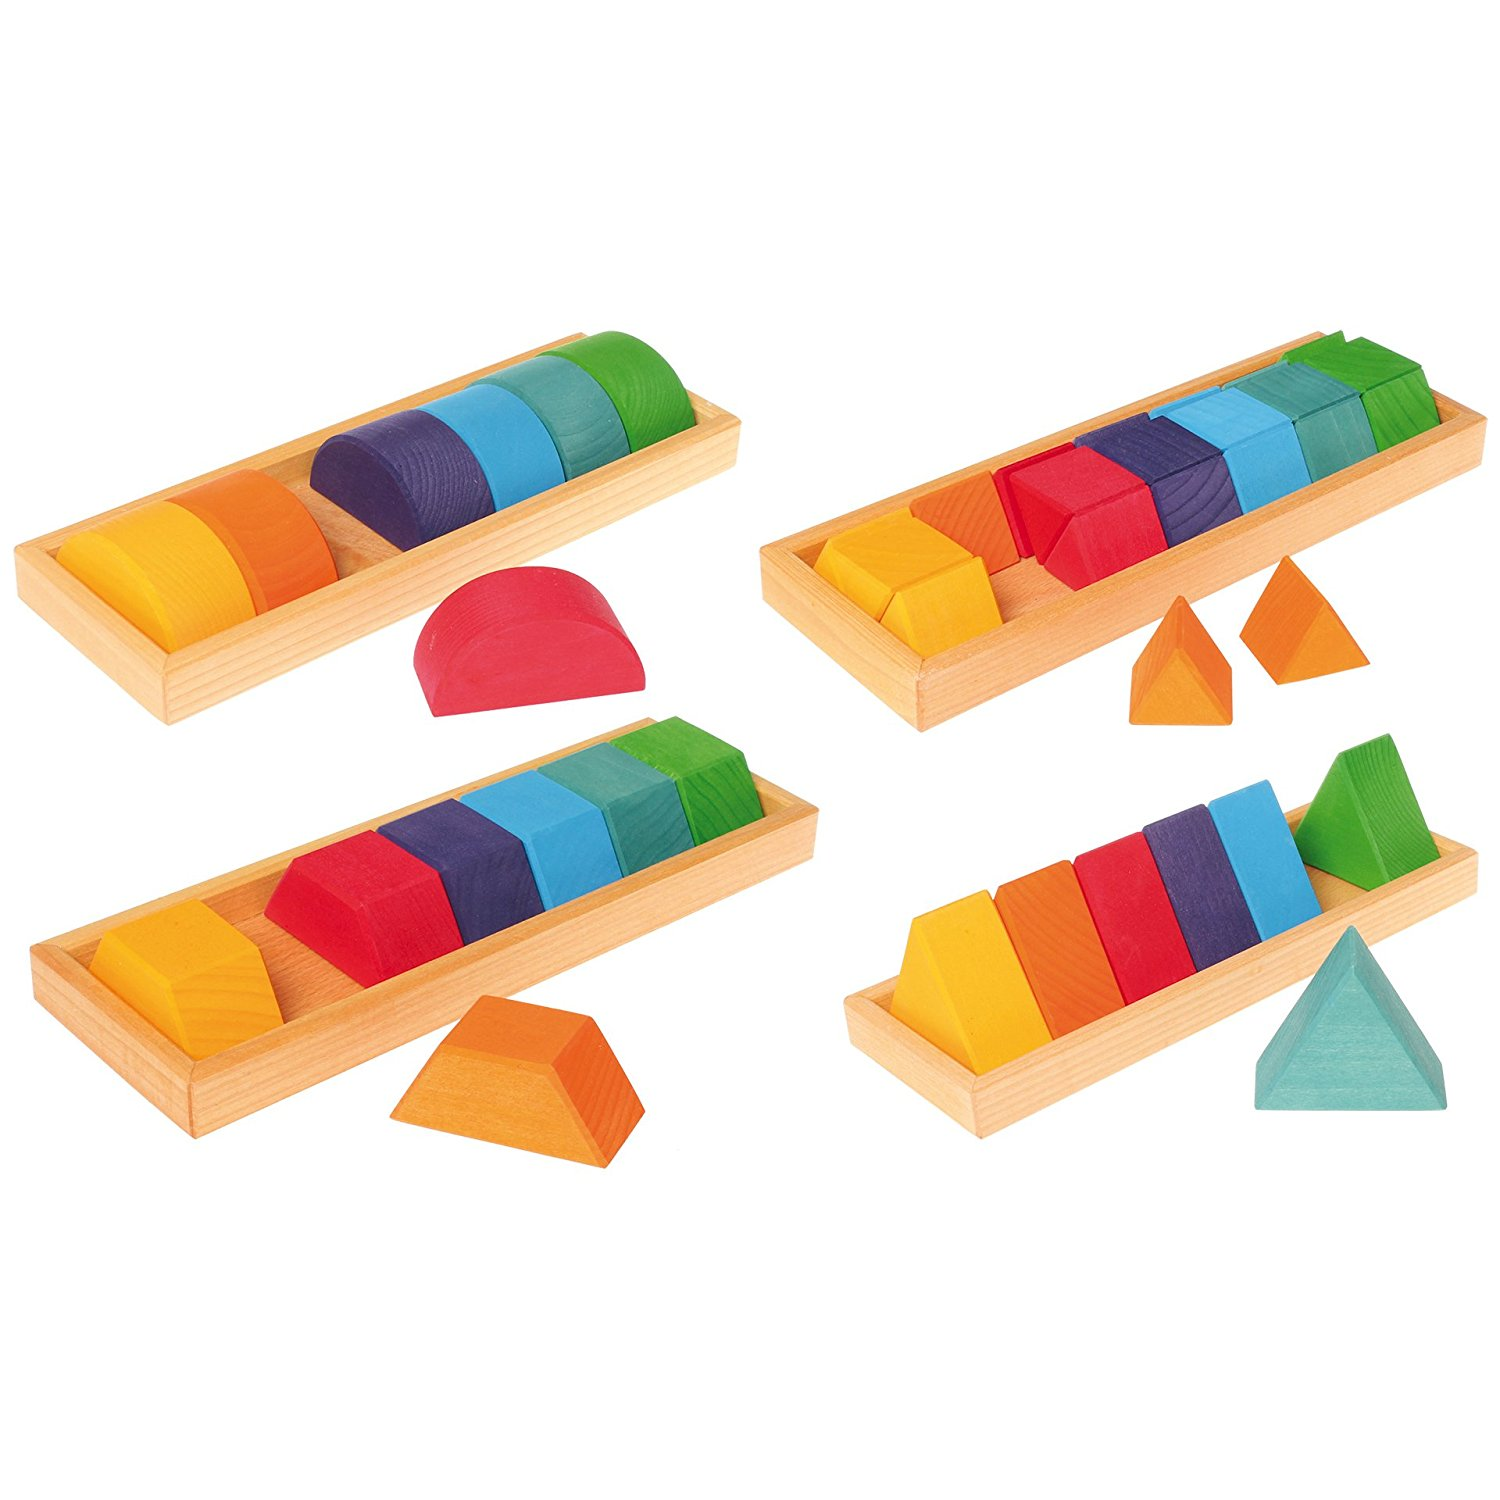 Grimmu0027s Large Shapes U0026 Colors Building Set, Part 2   Colorful Wooden Blocks  In 4